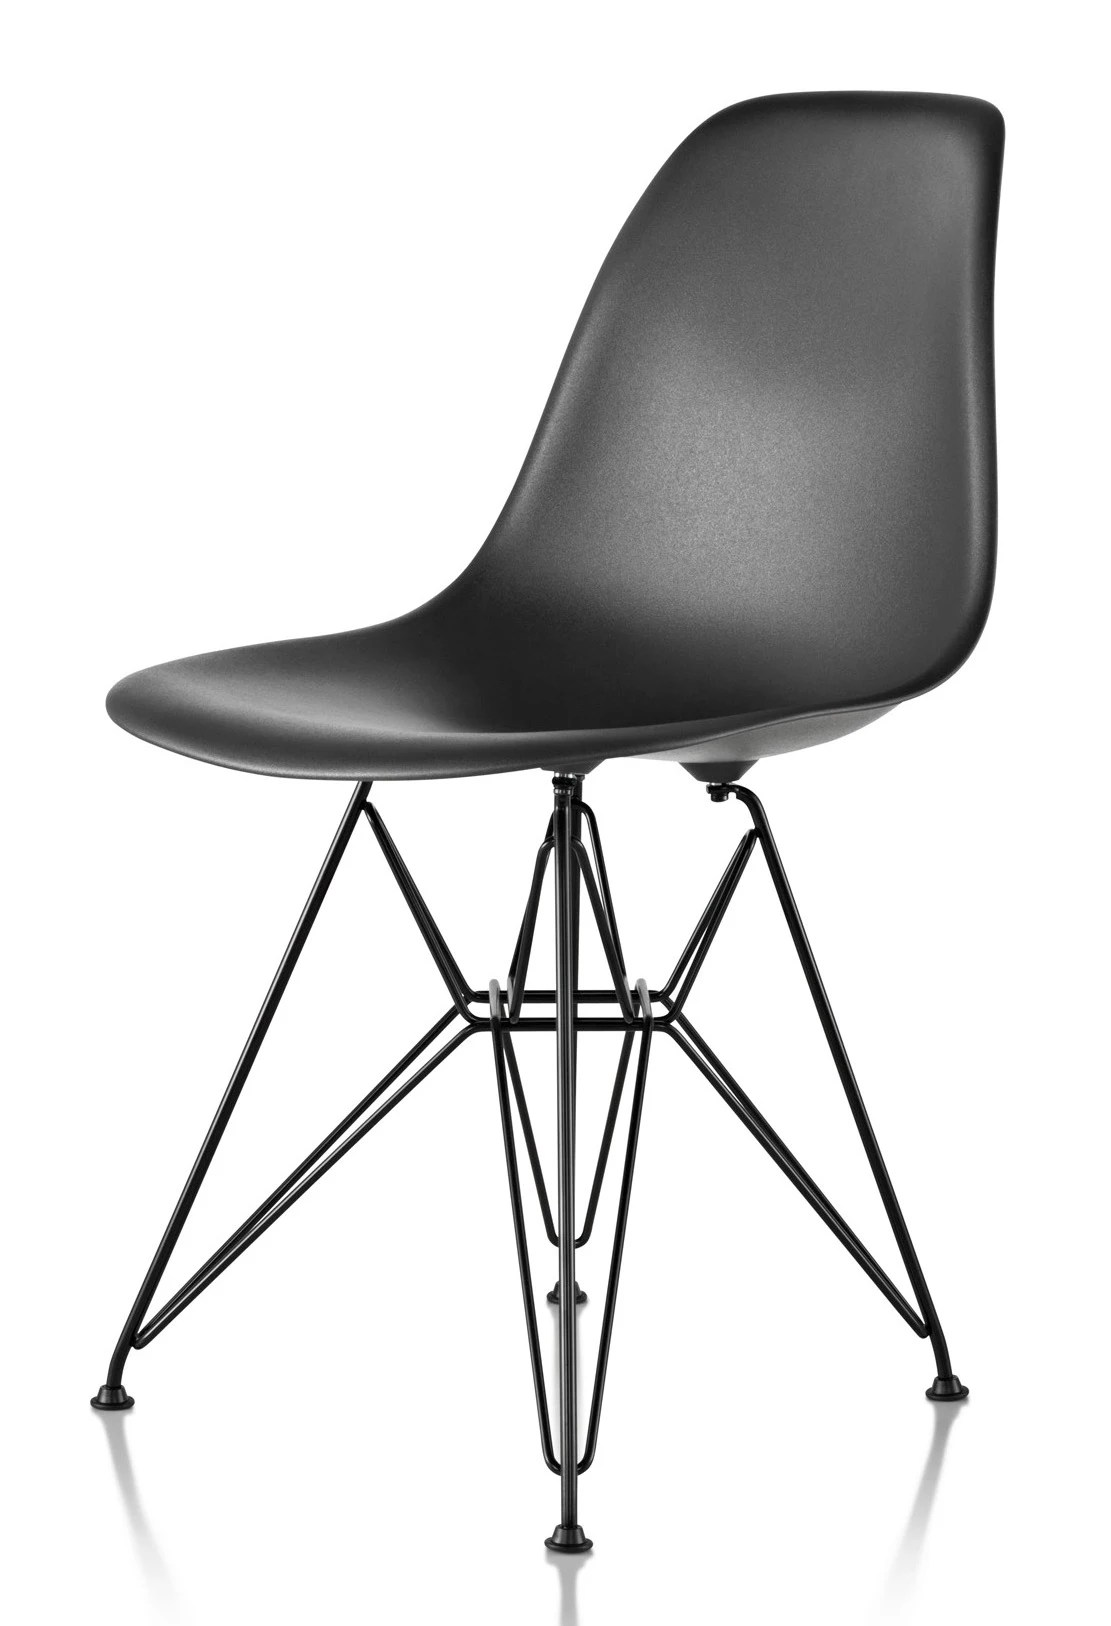 eames molded side chair lawn chairs lowes herman miller plastic gr shop